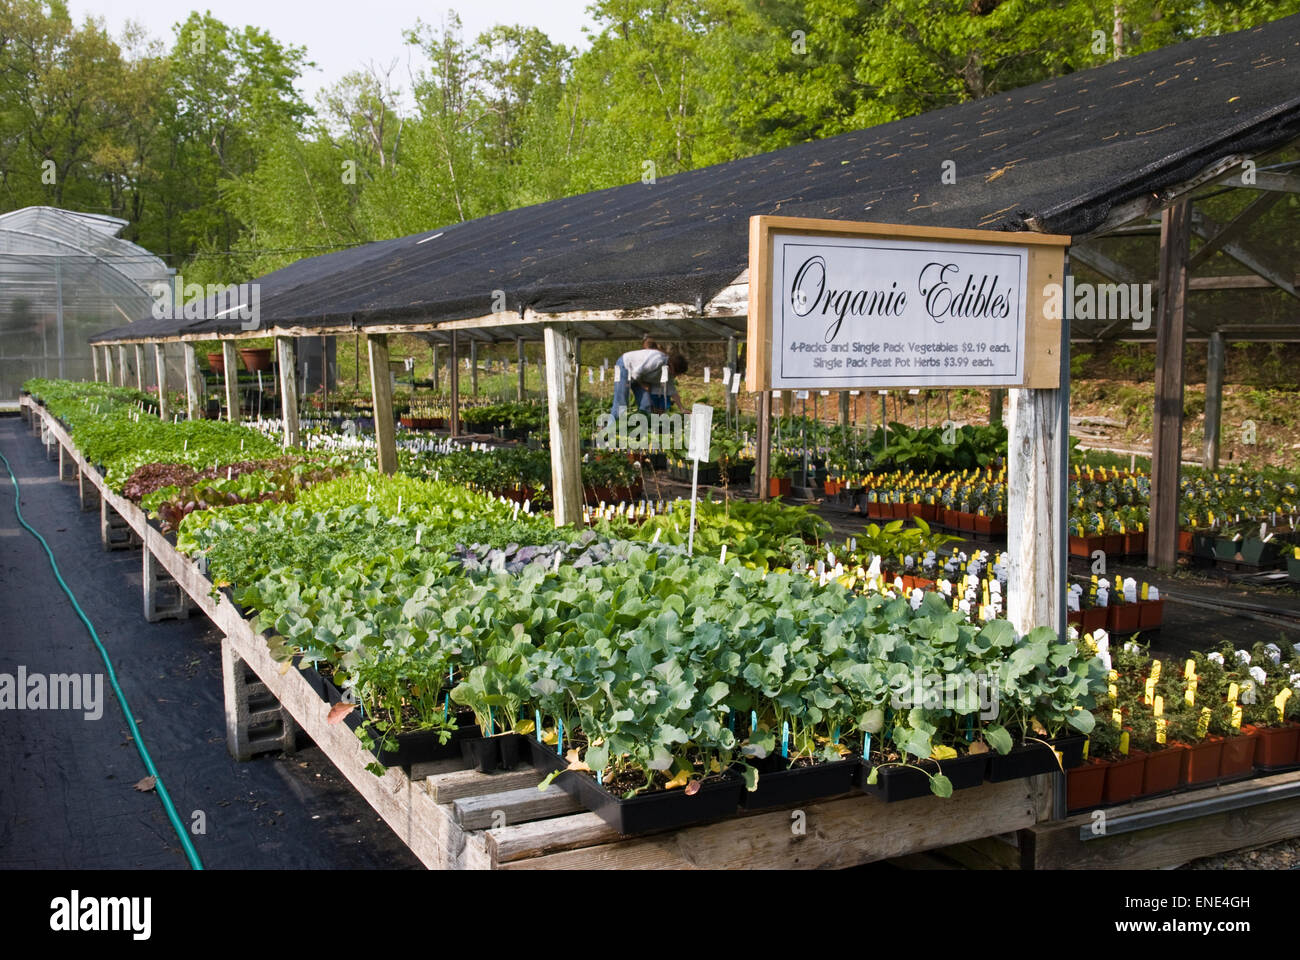 Organic herbs and vegetable plants for sale at a nursery in New York state - Stock Image